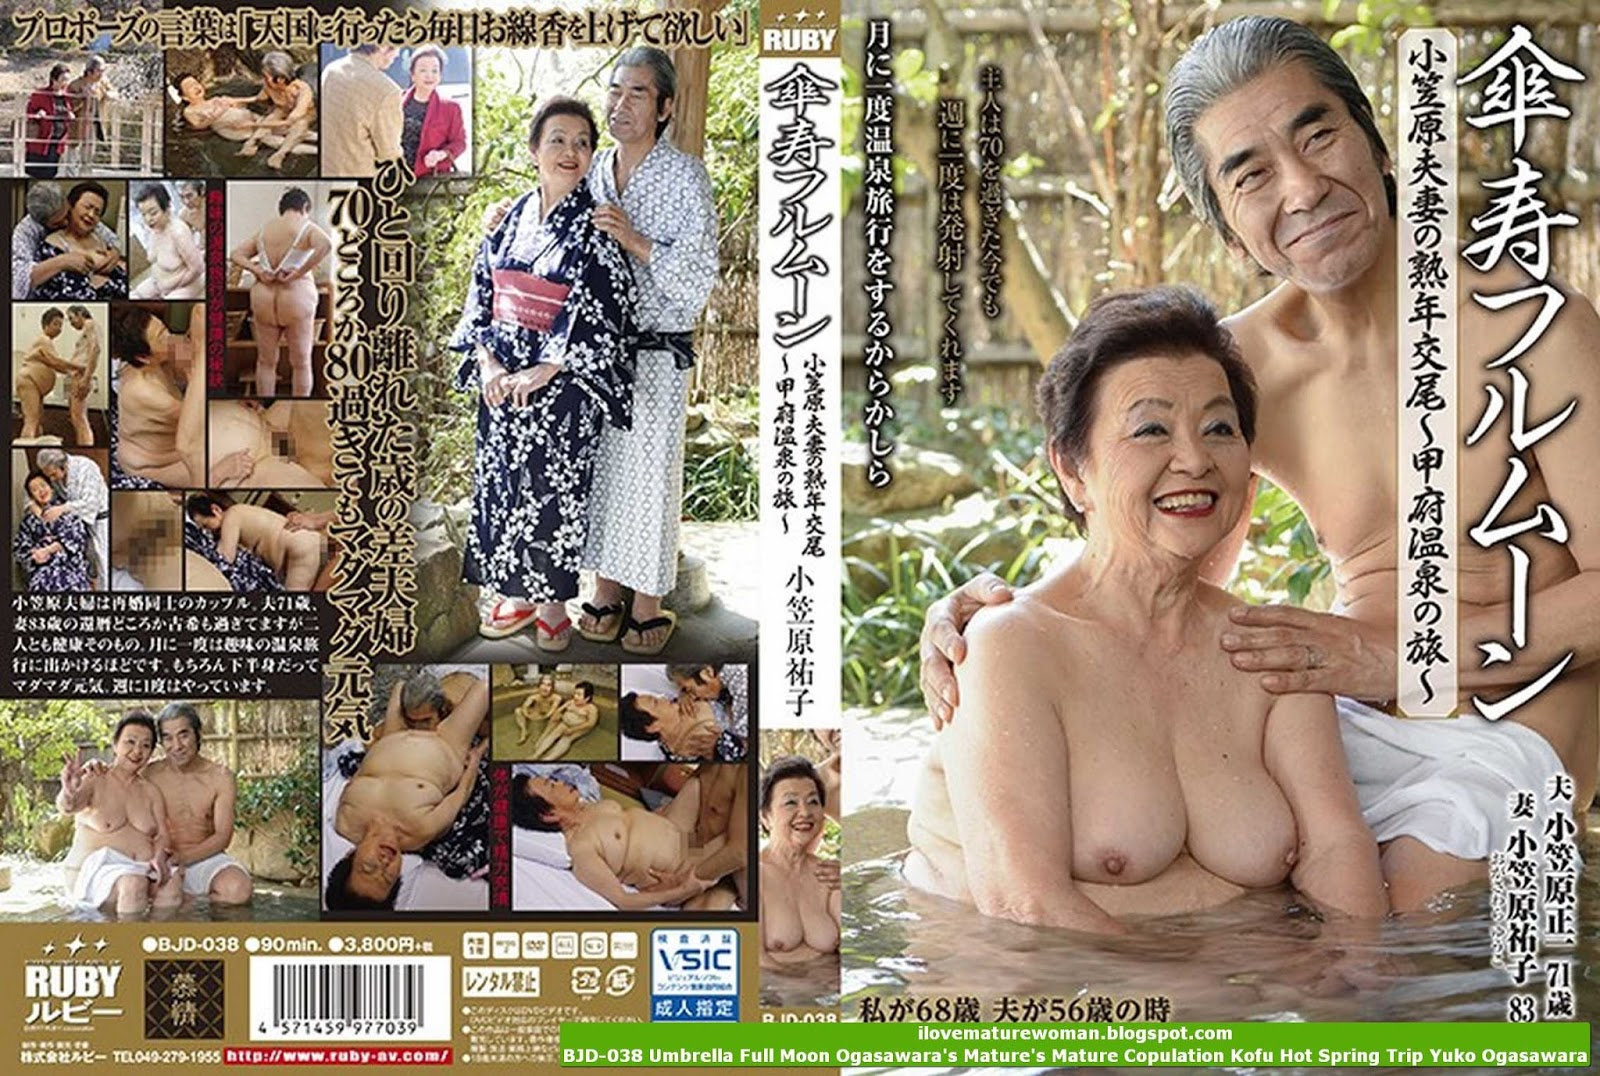 Mature Movies Full